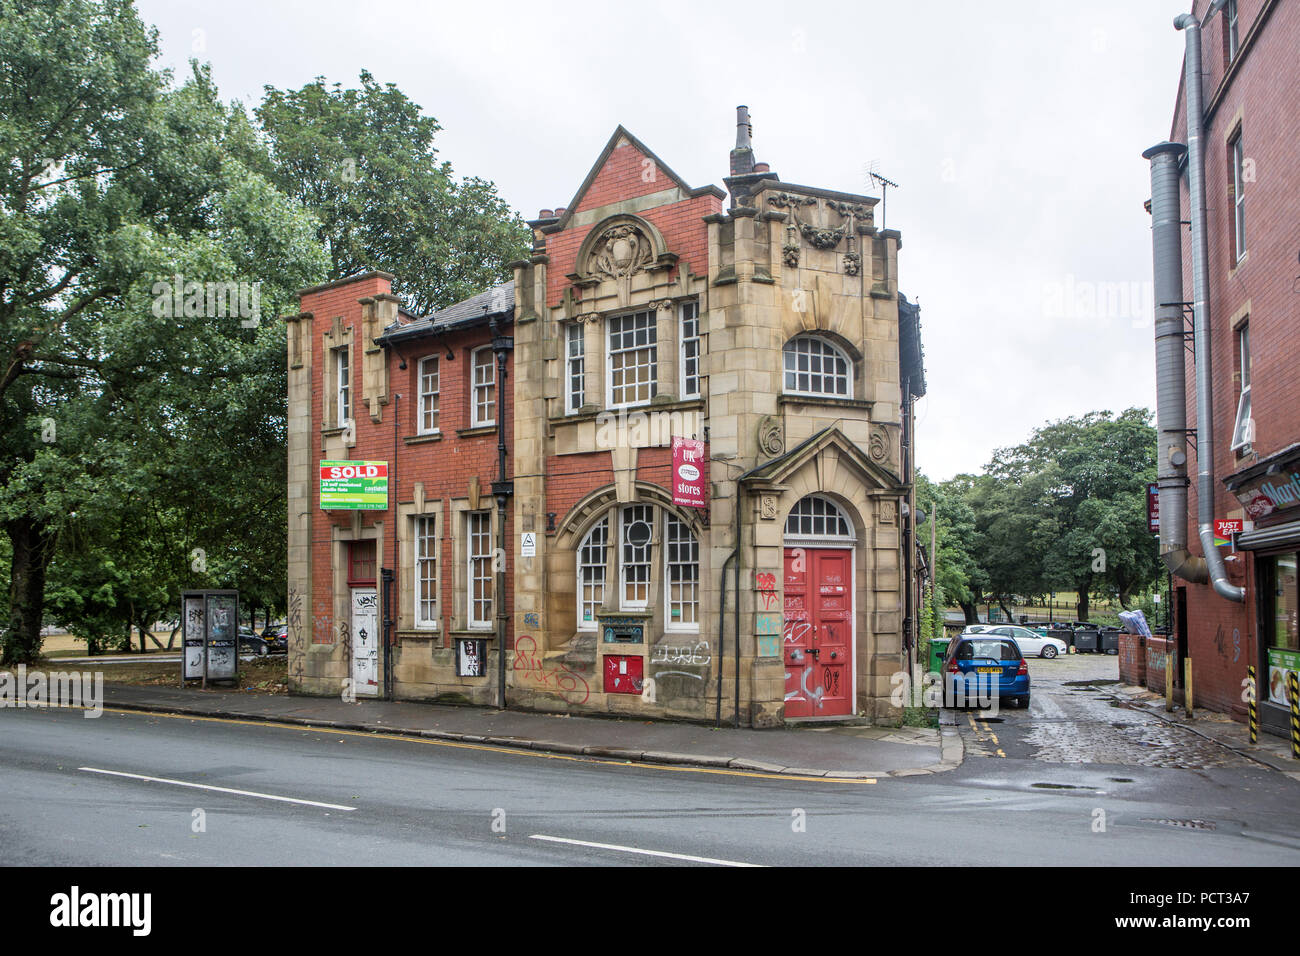 Old Post Office on Woodhouse St. Leeds, awaiting development - Stock Image